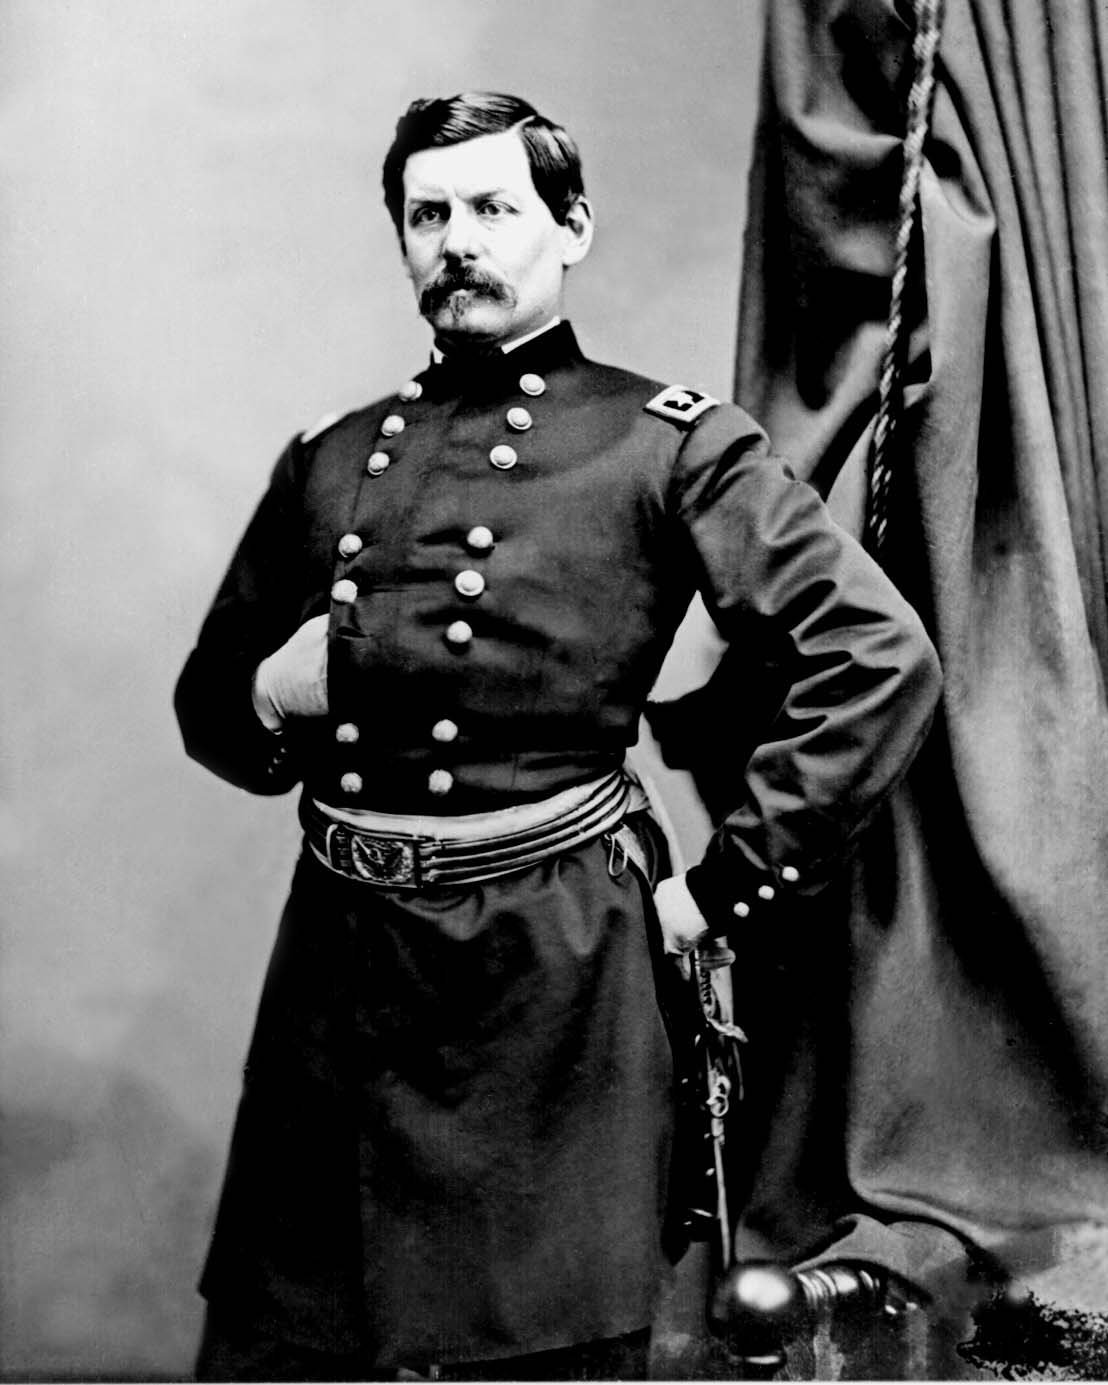 Union General George B. McClellan led the Army of the Potomac to Antietam as part of the Maryland Campaign. While McClellan drove Lee into retreat, President Lincoln wished he had actively pursued Lee's forces, leading to McClellan's removal. Wikimedia Co